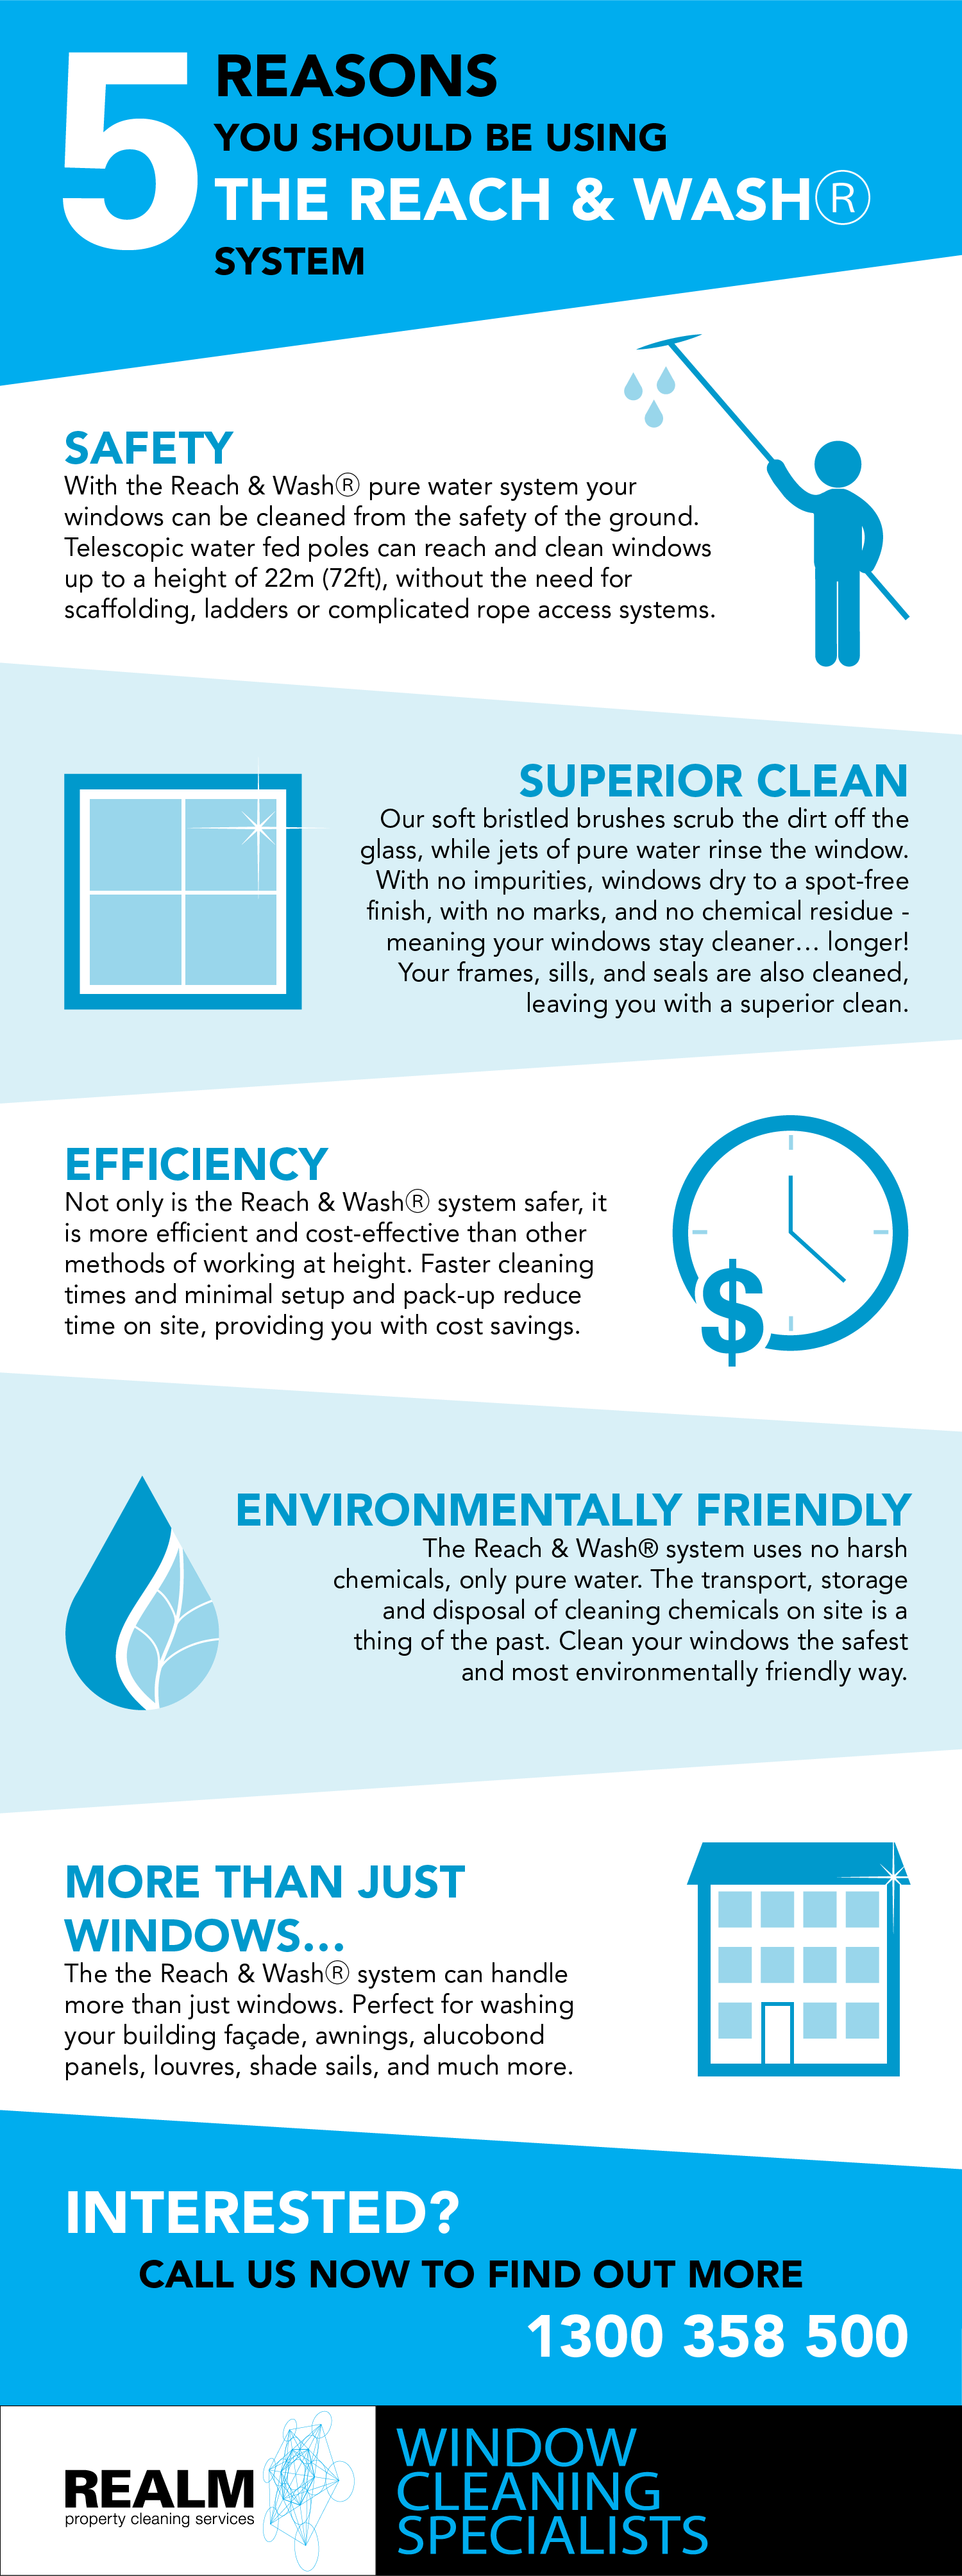 5 Reasons you should be using the Reach & Wash window cleaning system - INFOGRAPHIC